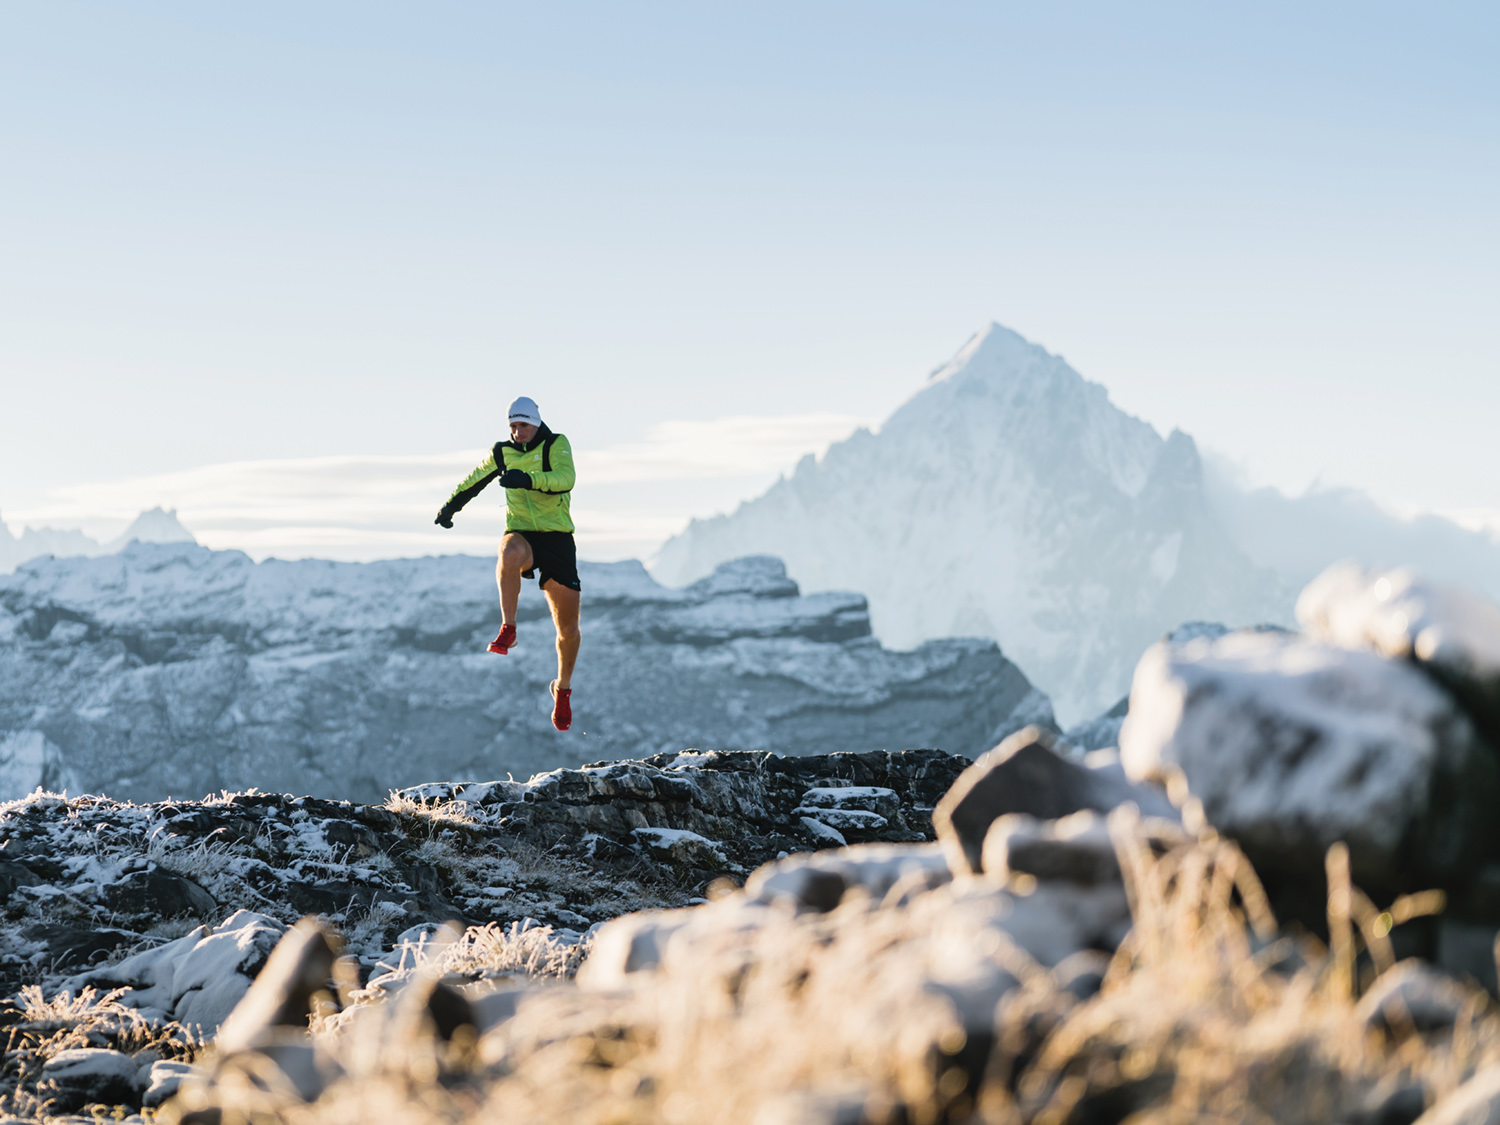 Donnie completed the Winter Ramsay Round in 23:06, setting a new fastest-known-record.